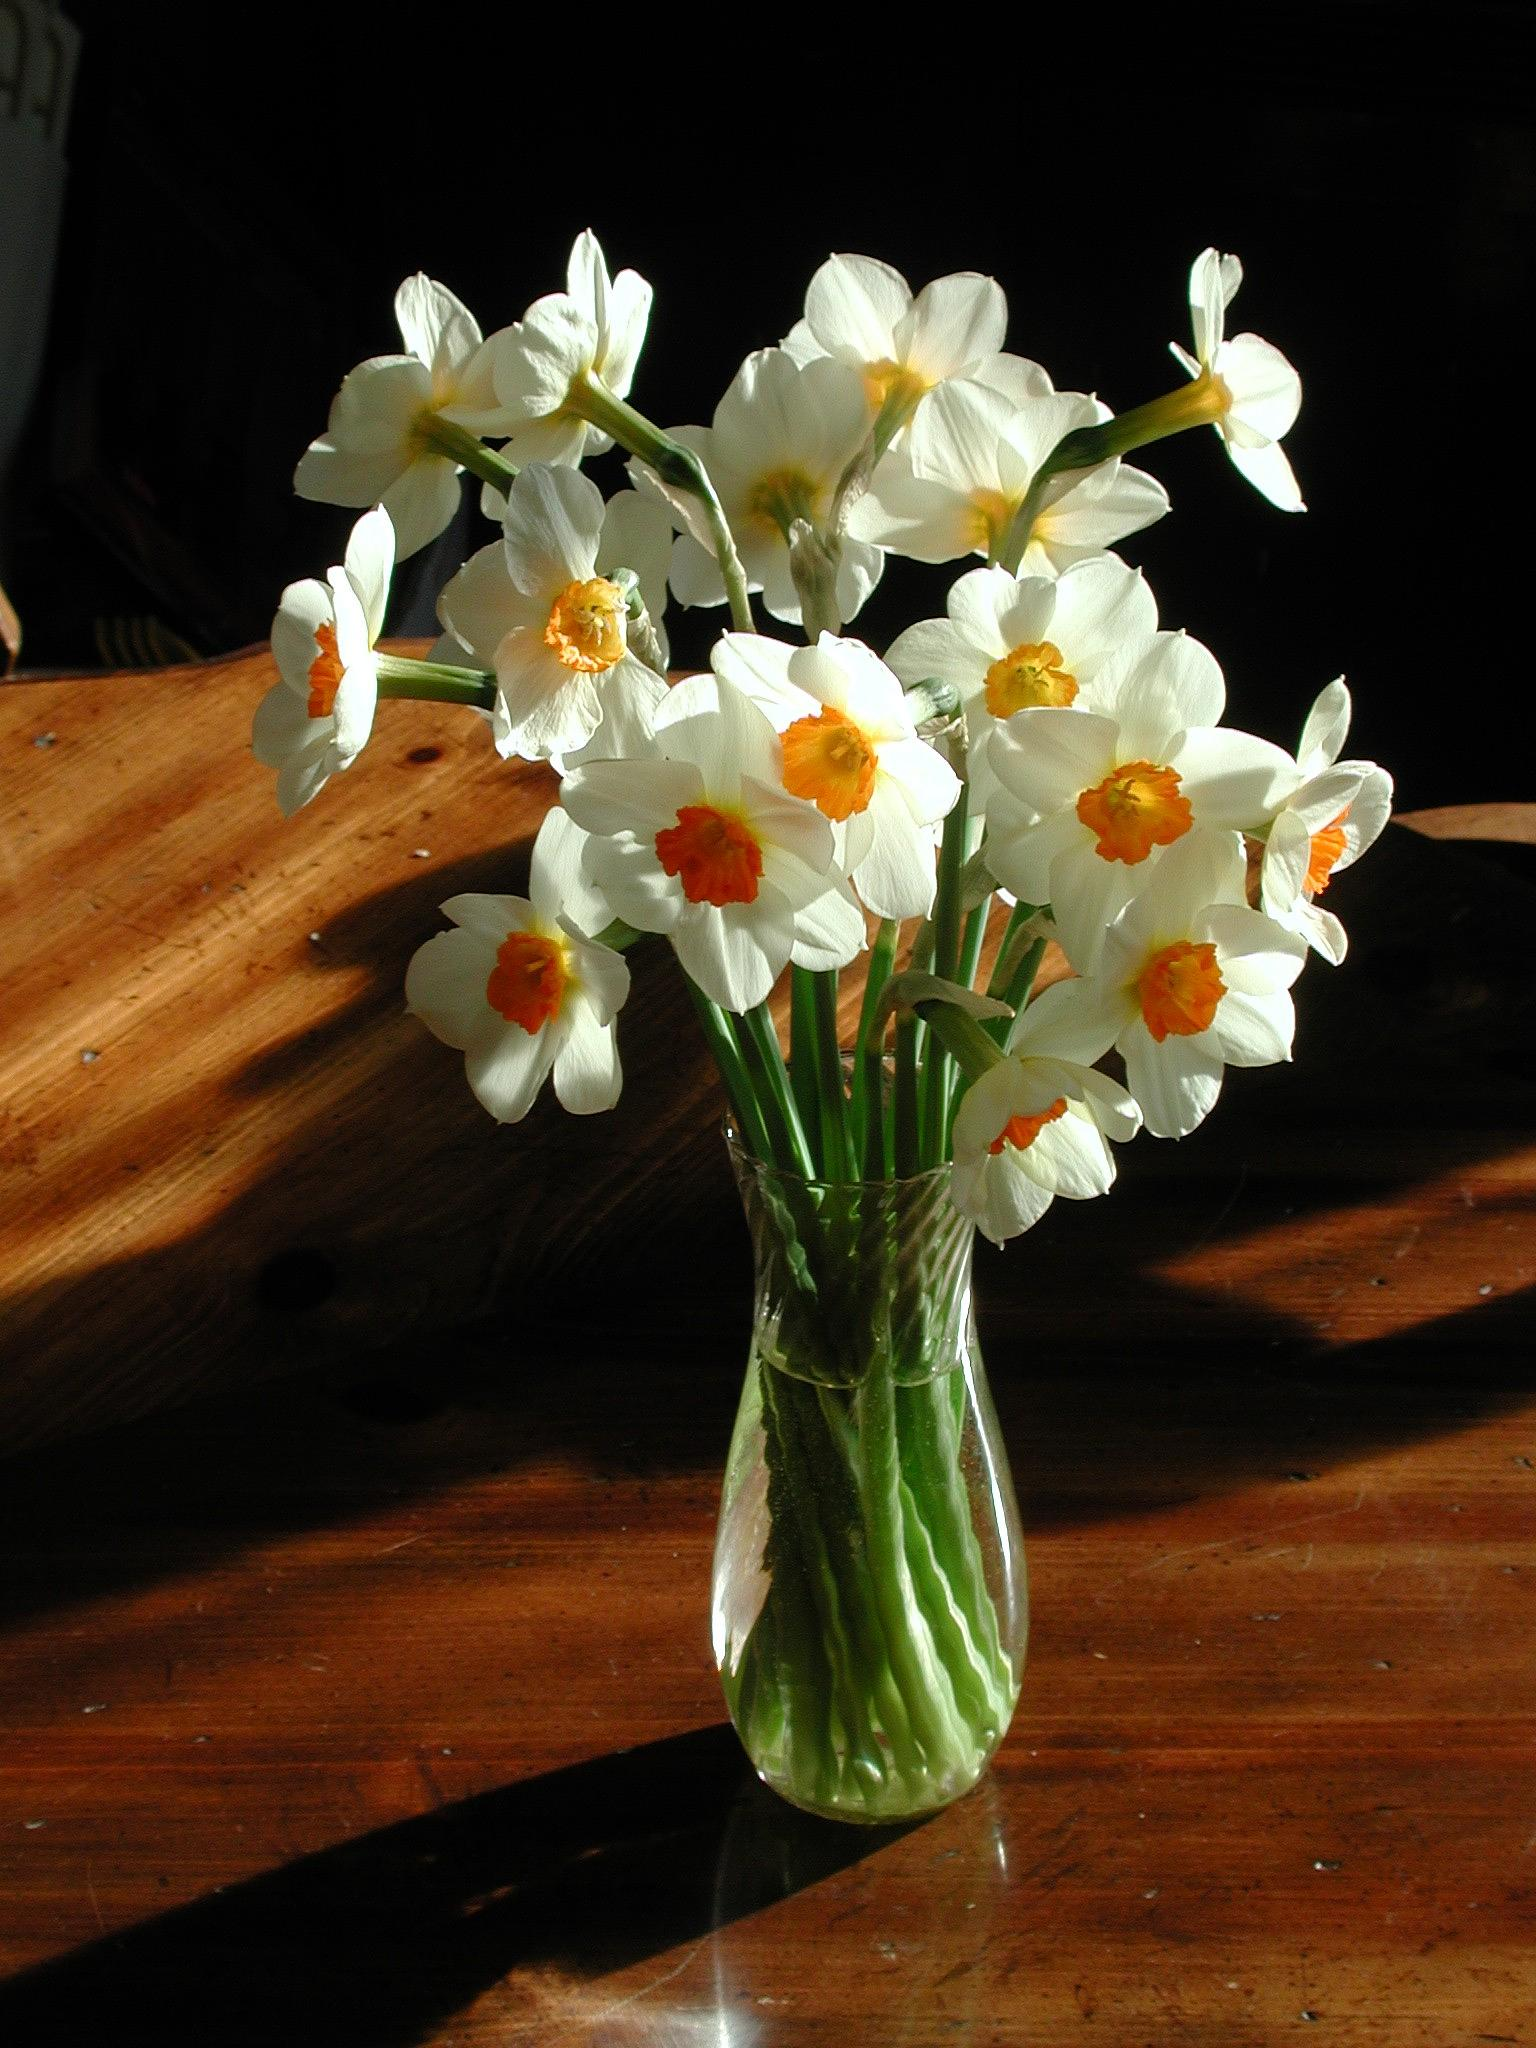 Daffodils by wes.johnson.58